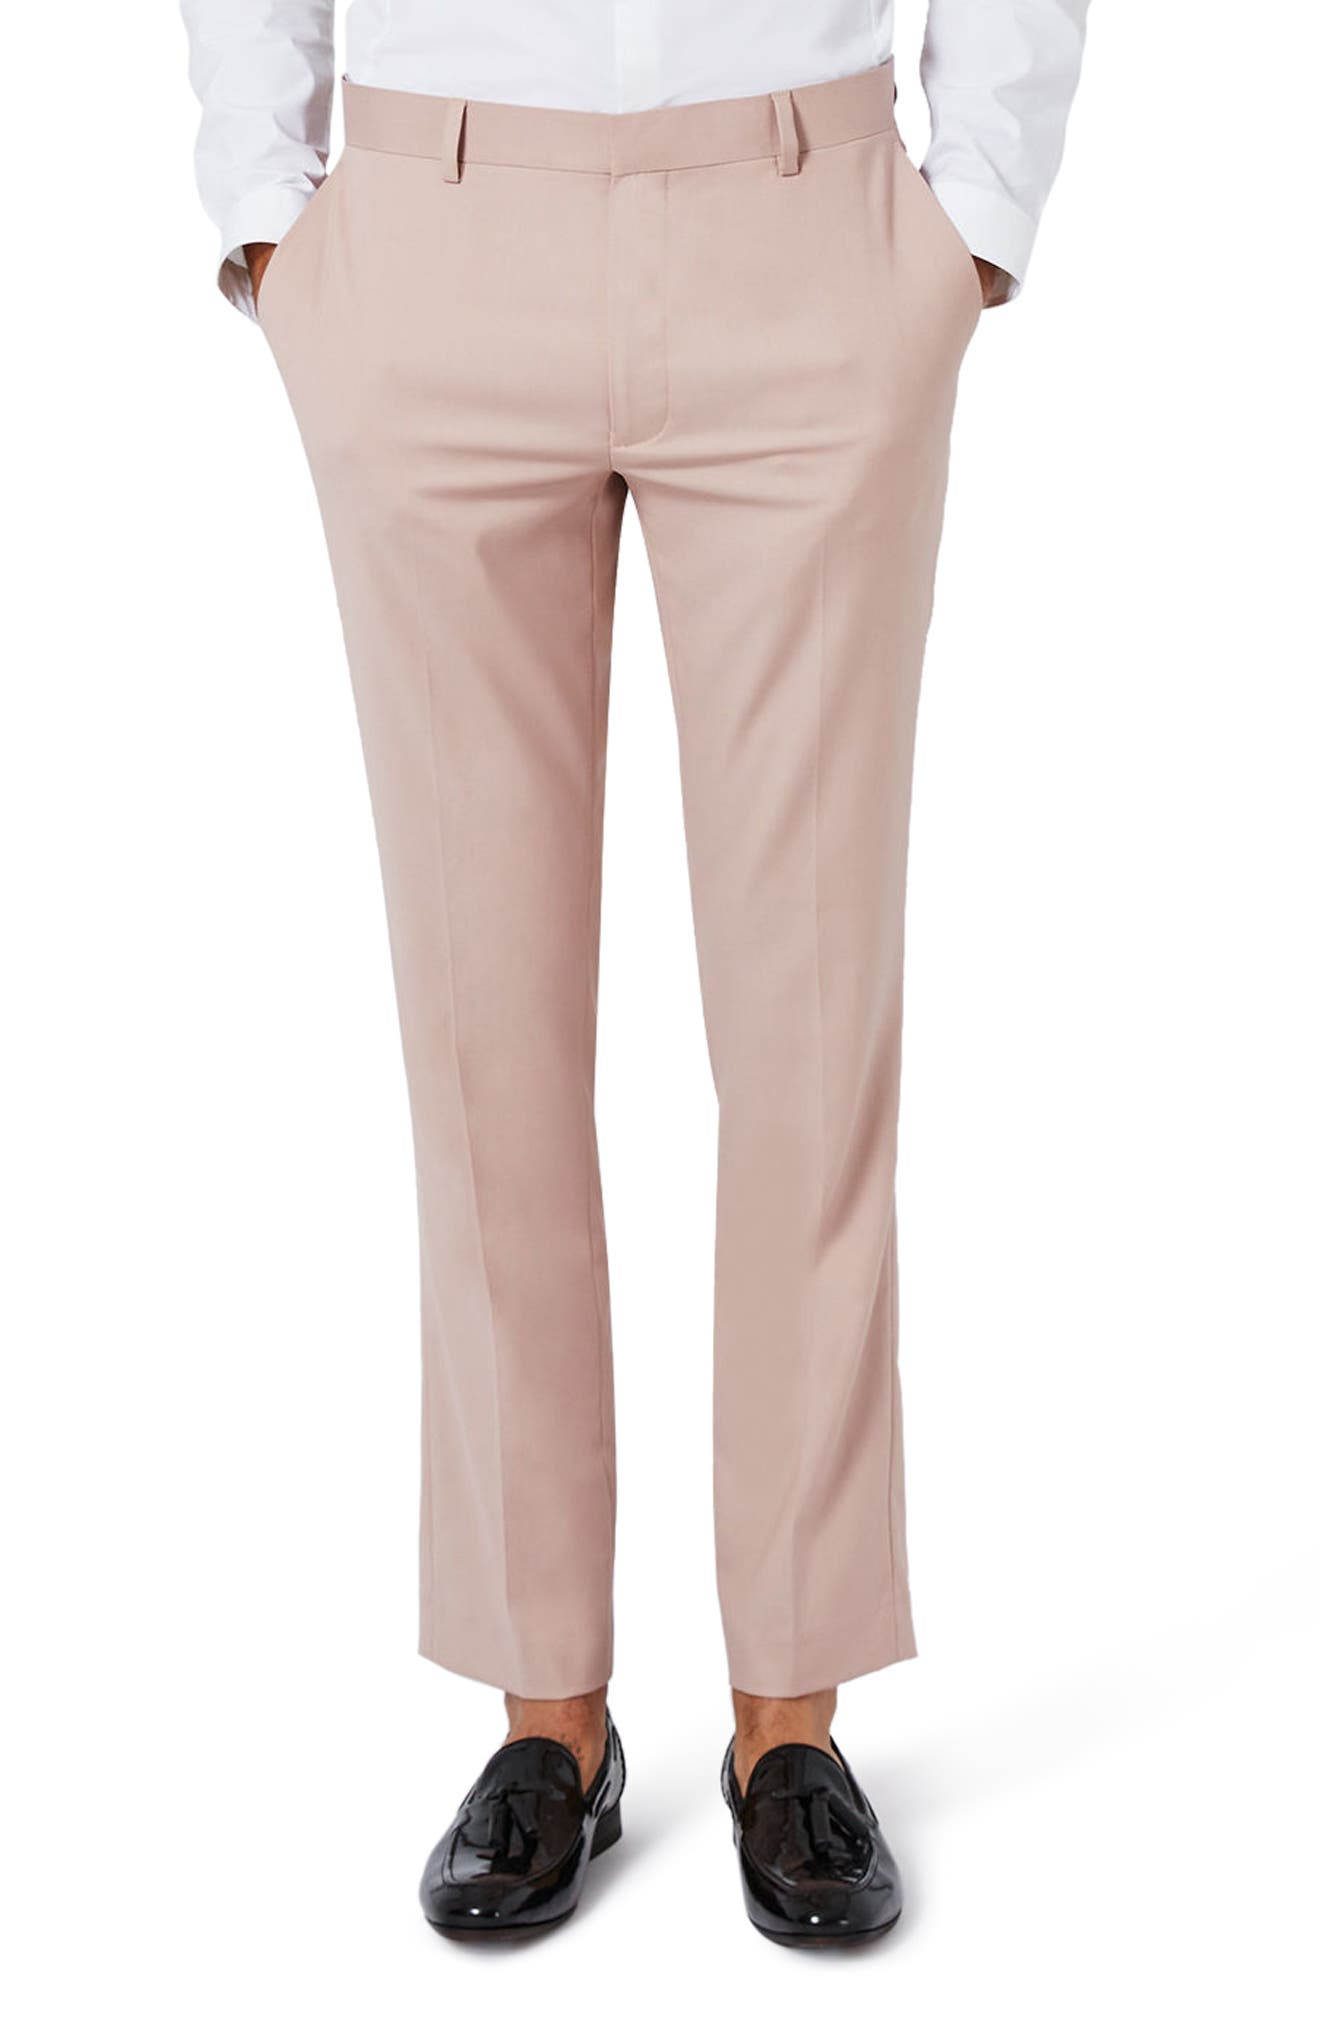 Men's Dress Pants: Flat Front & Pleated | Nordstrom